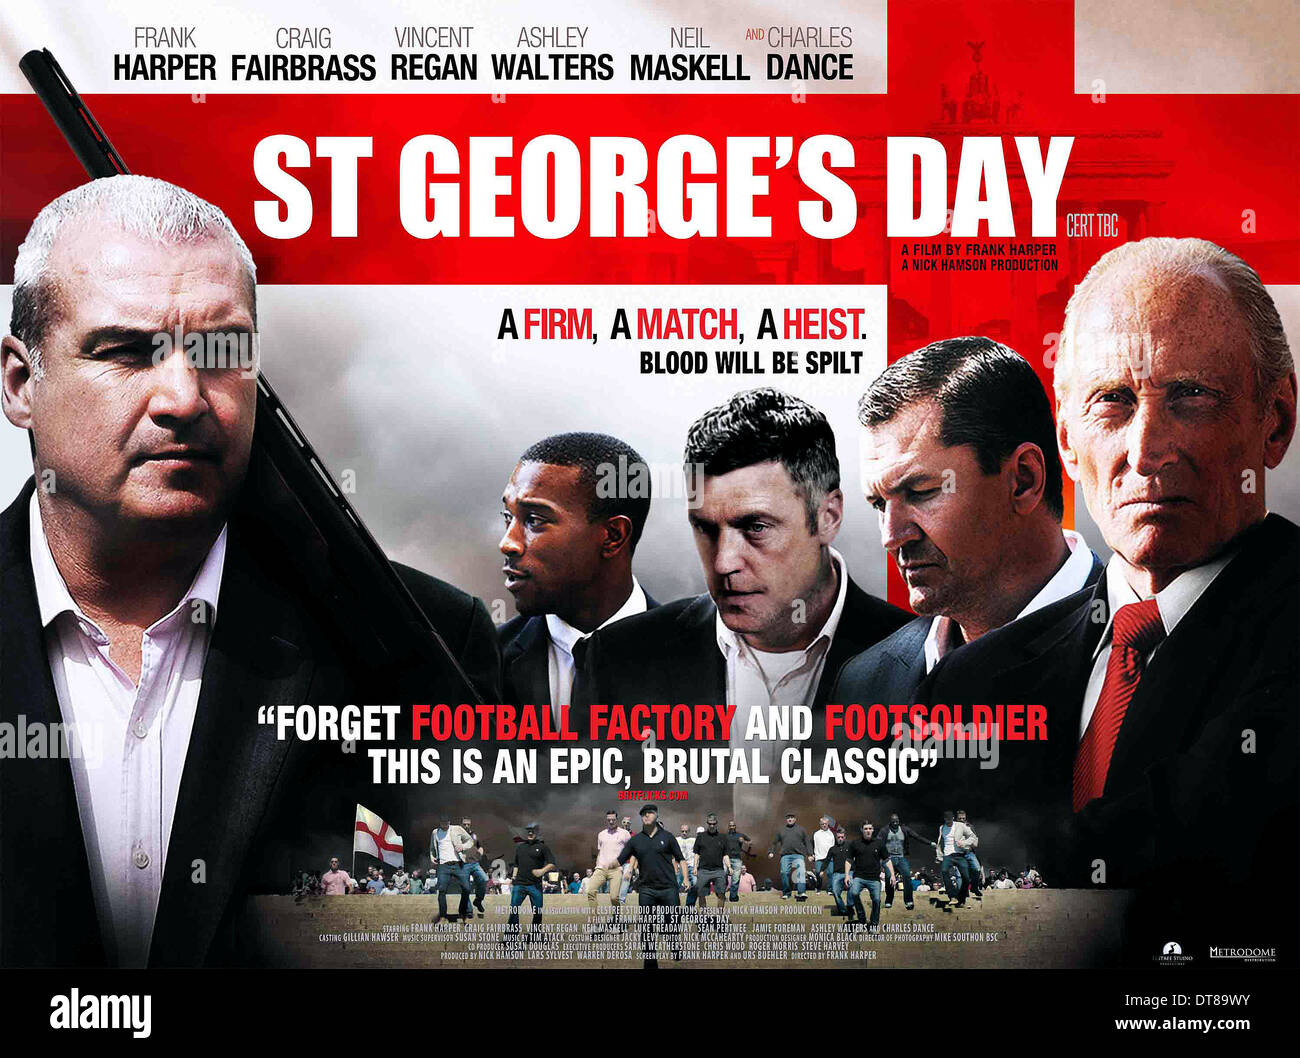 FRANK HARPER ASHLEY WALTERS VINCENT REGAN CRAIG FAIRBRASS & CHARLES DANCE POSTER ST GEORGE'S DAY (2012) - Stock Image